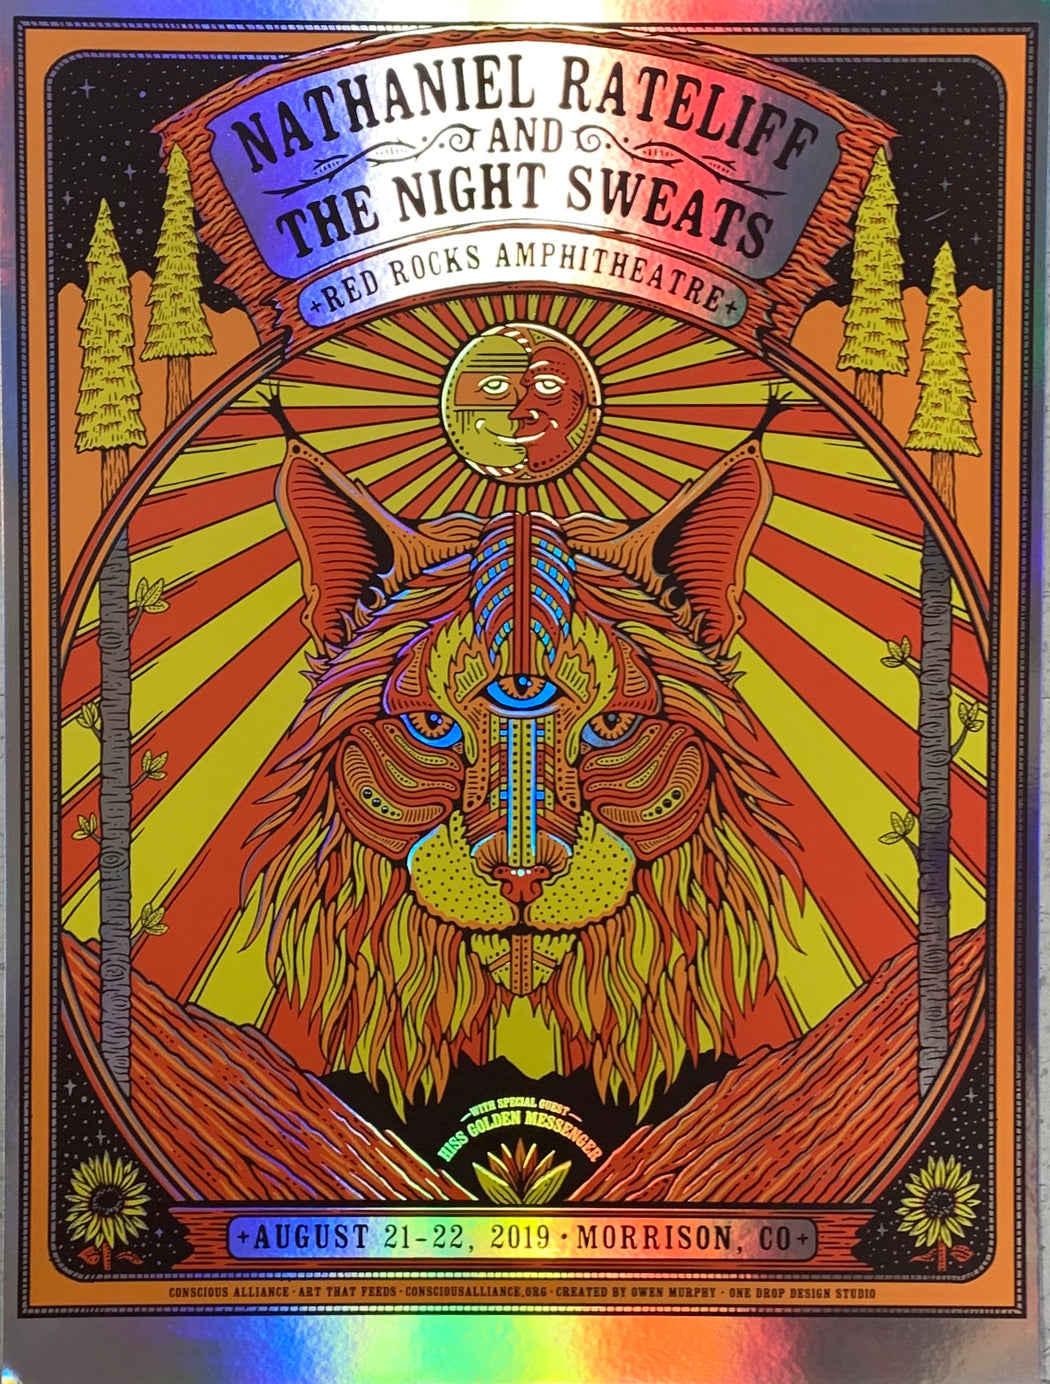 Nathaniel Rateliff & The Night Sweats Morrison - 2019